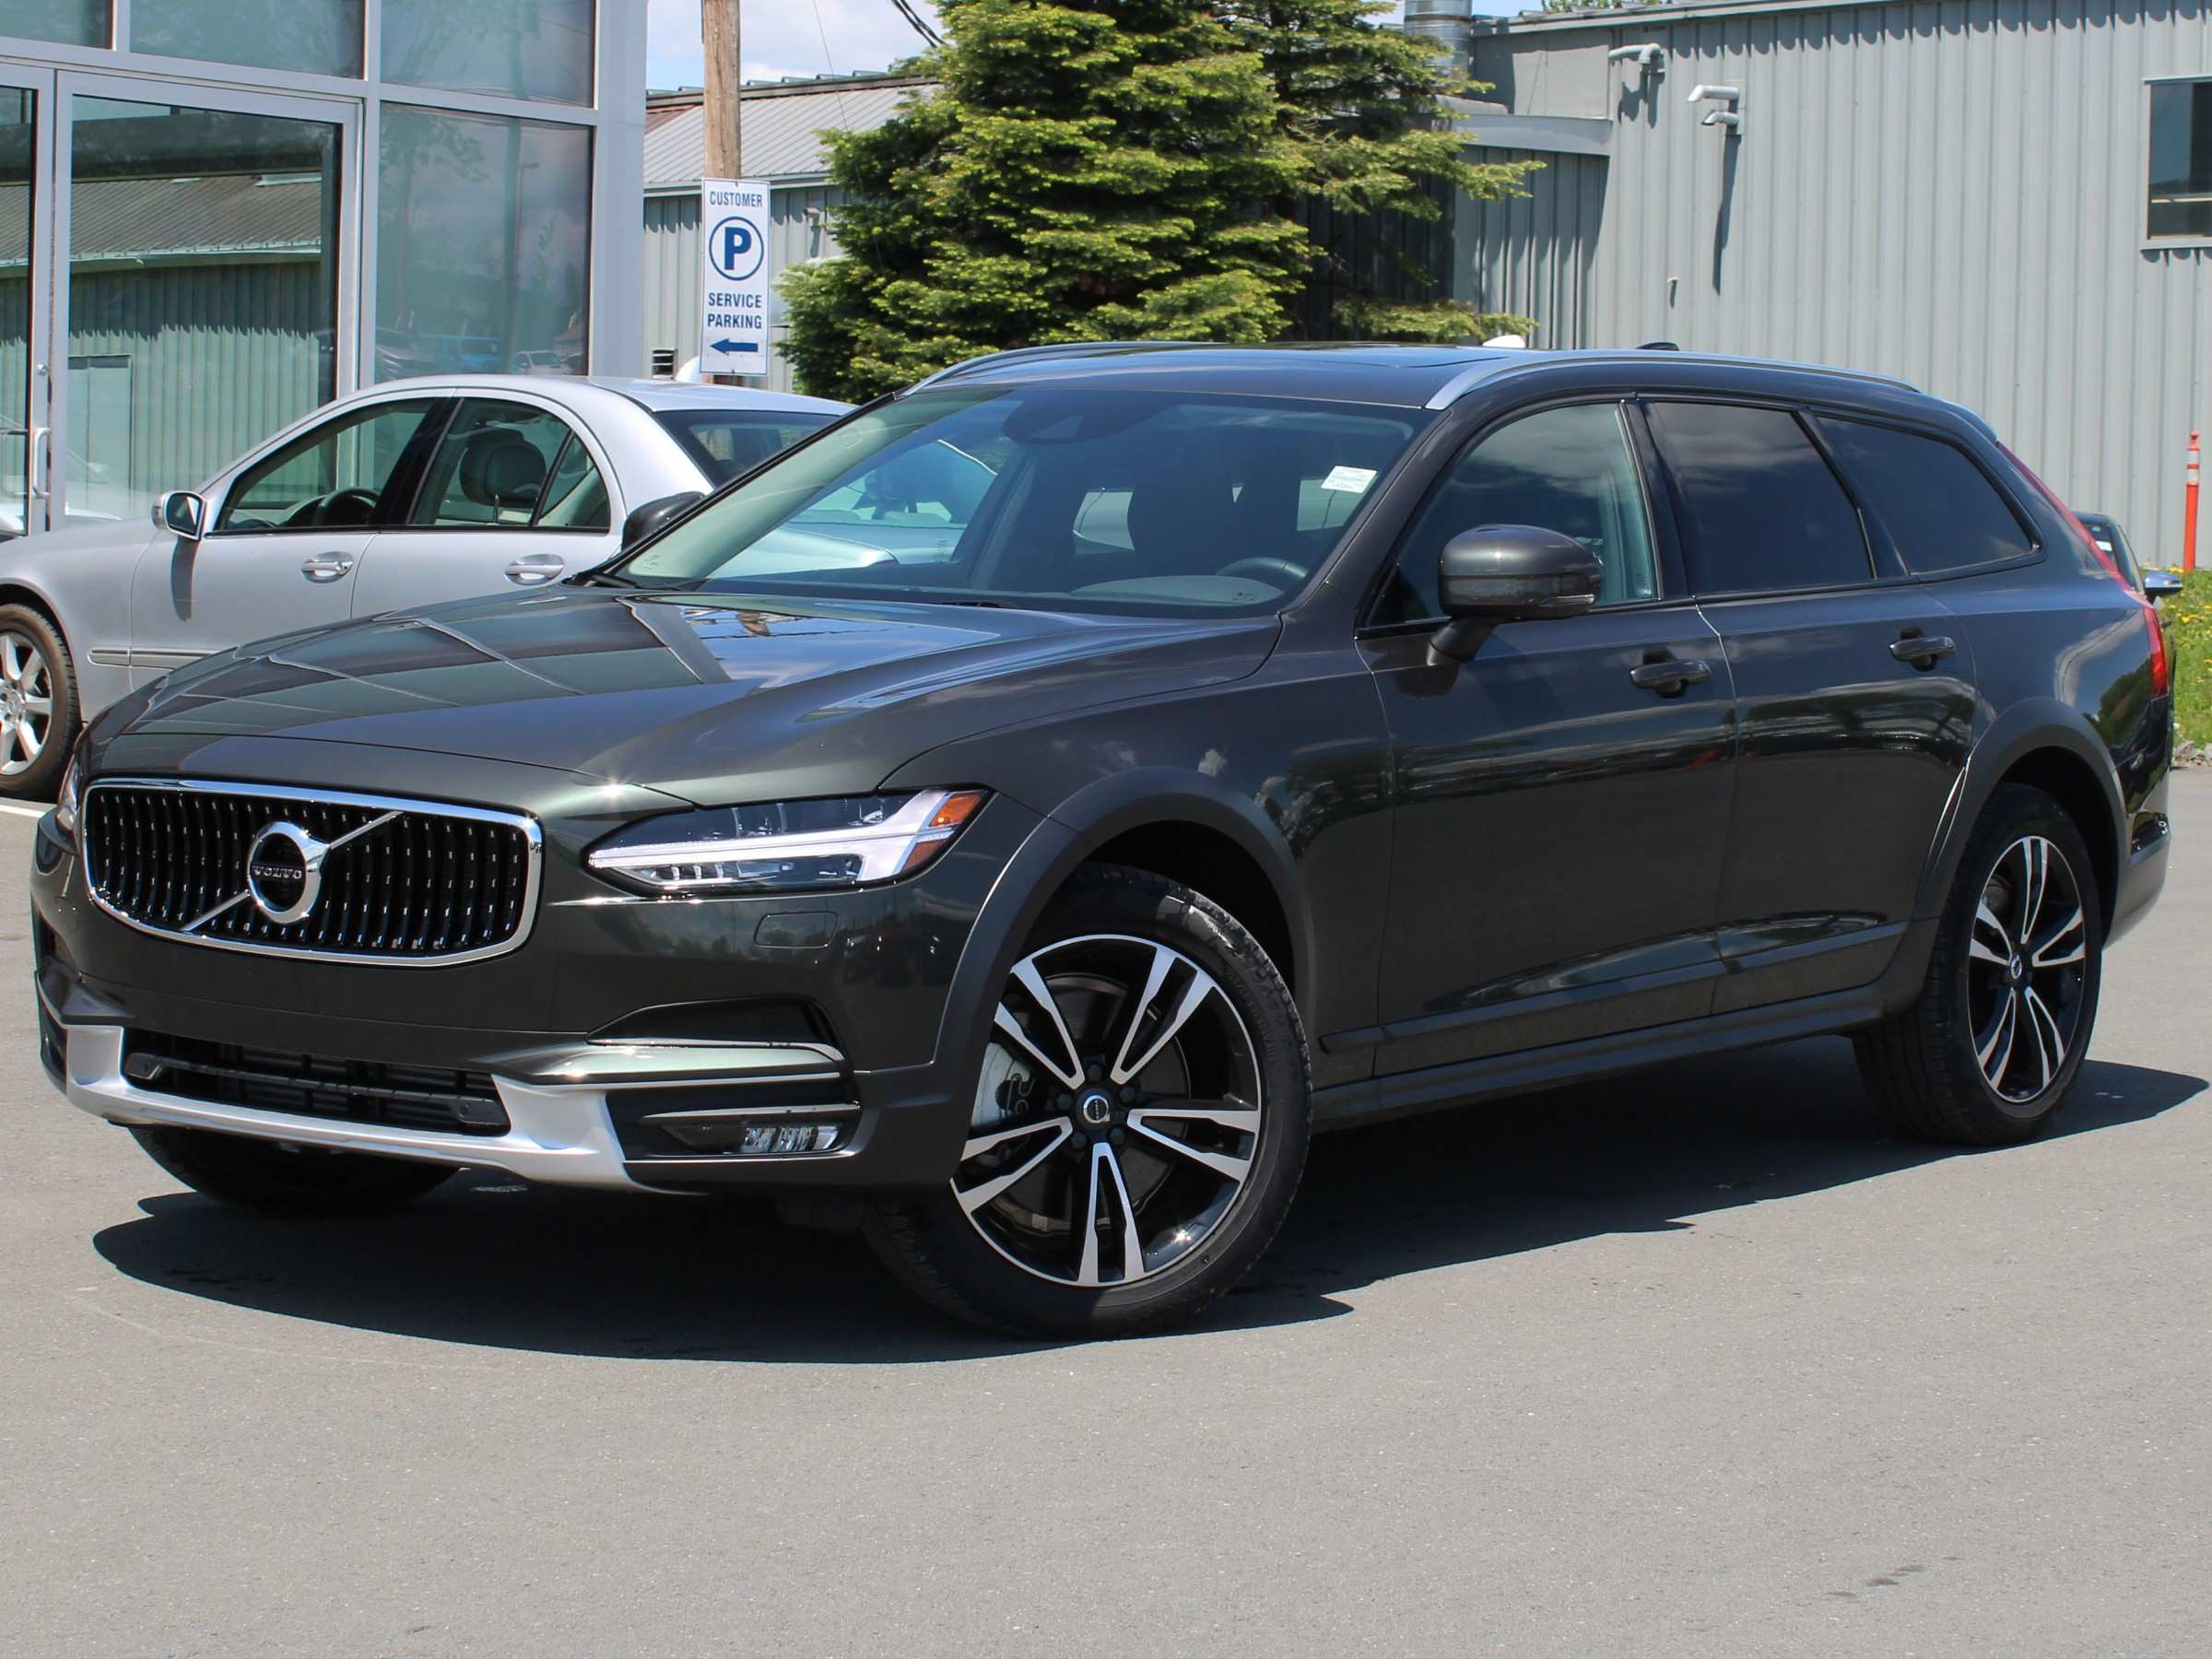 35 Gallery of 2019 Volvo V90 Pictures for 2019 Volvo V90